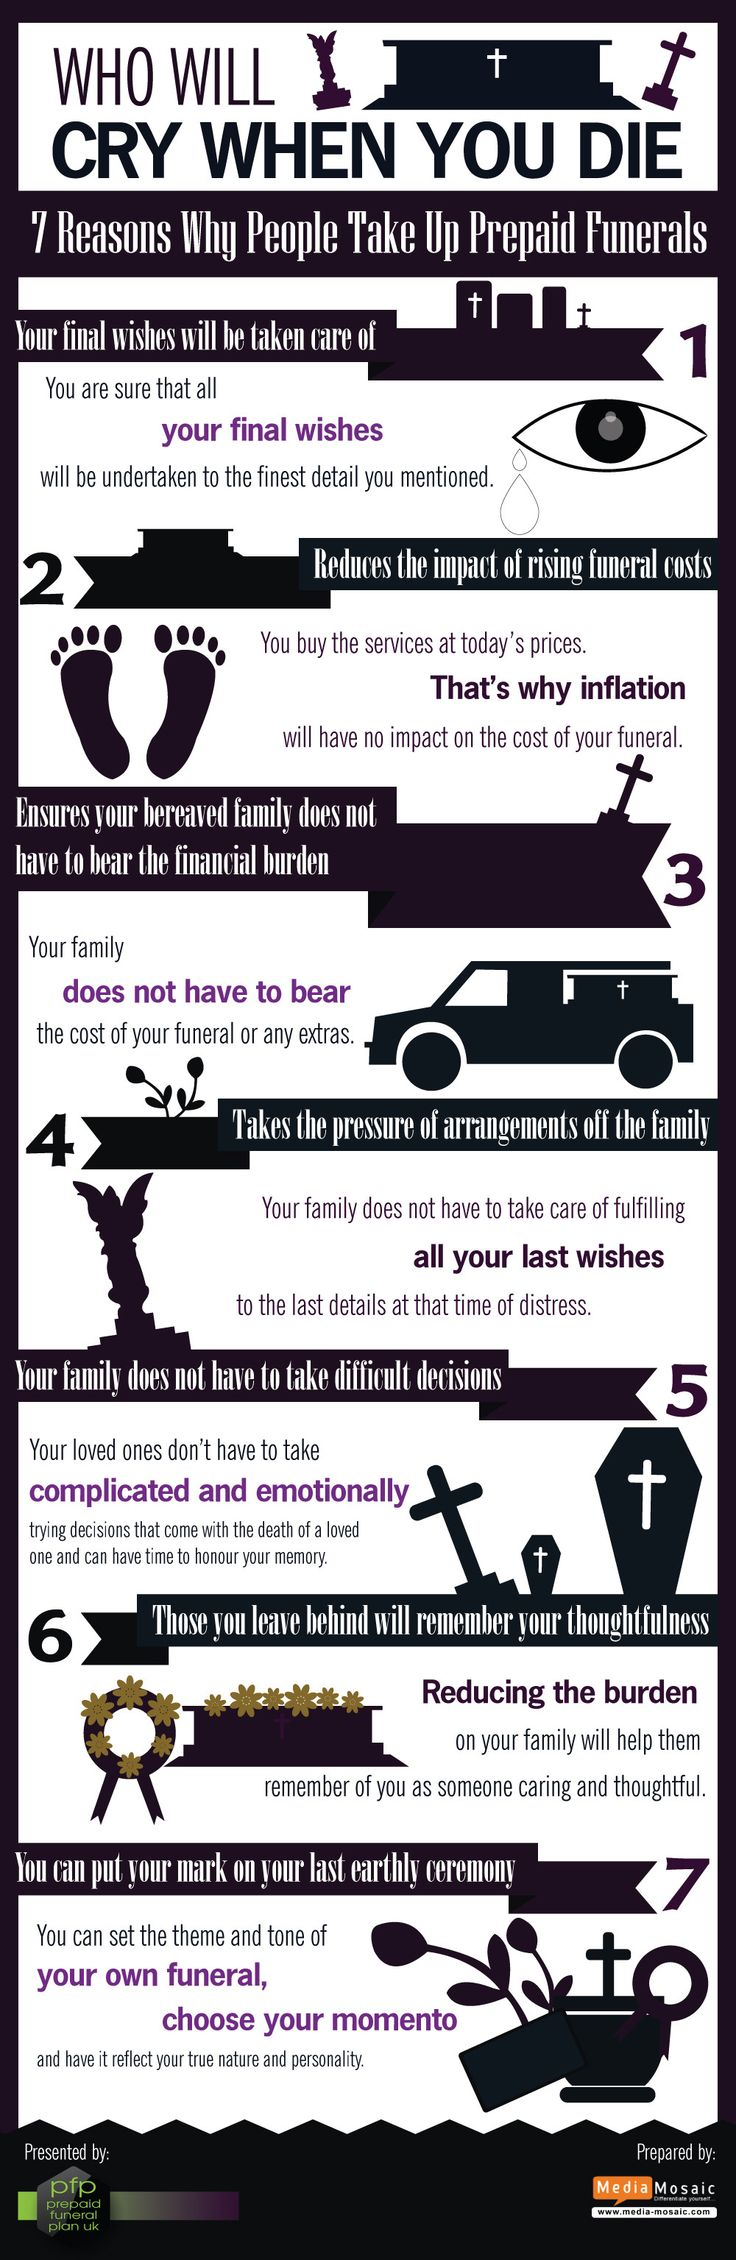 Who Will Cry When You Die   #infographic #Die #Funeral